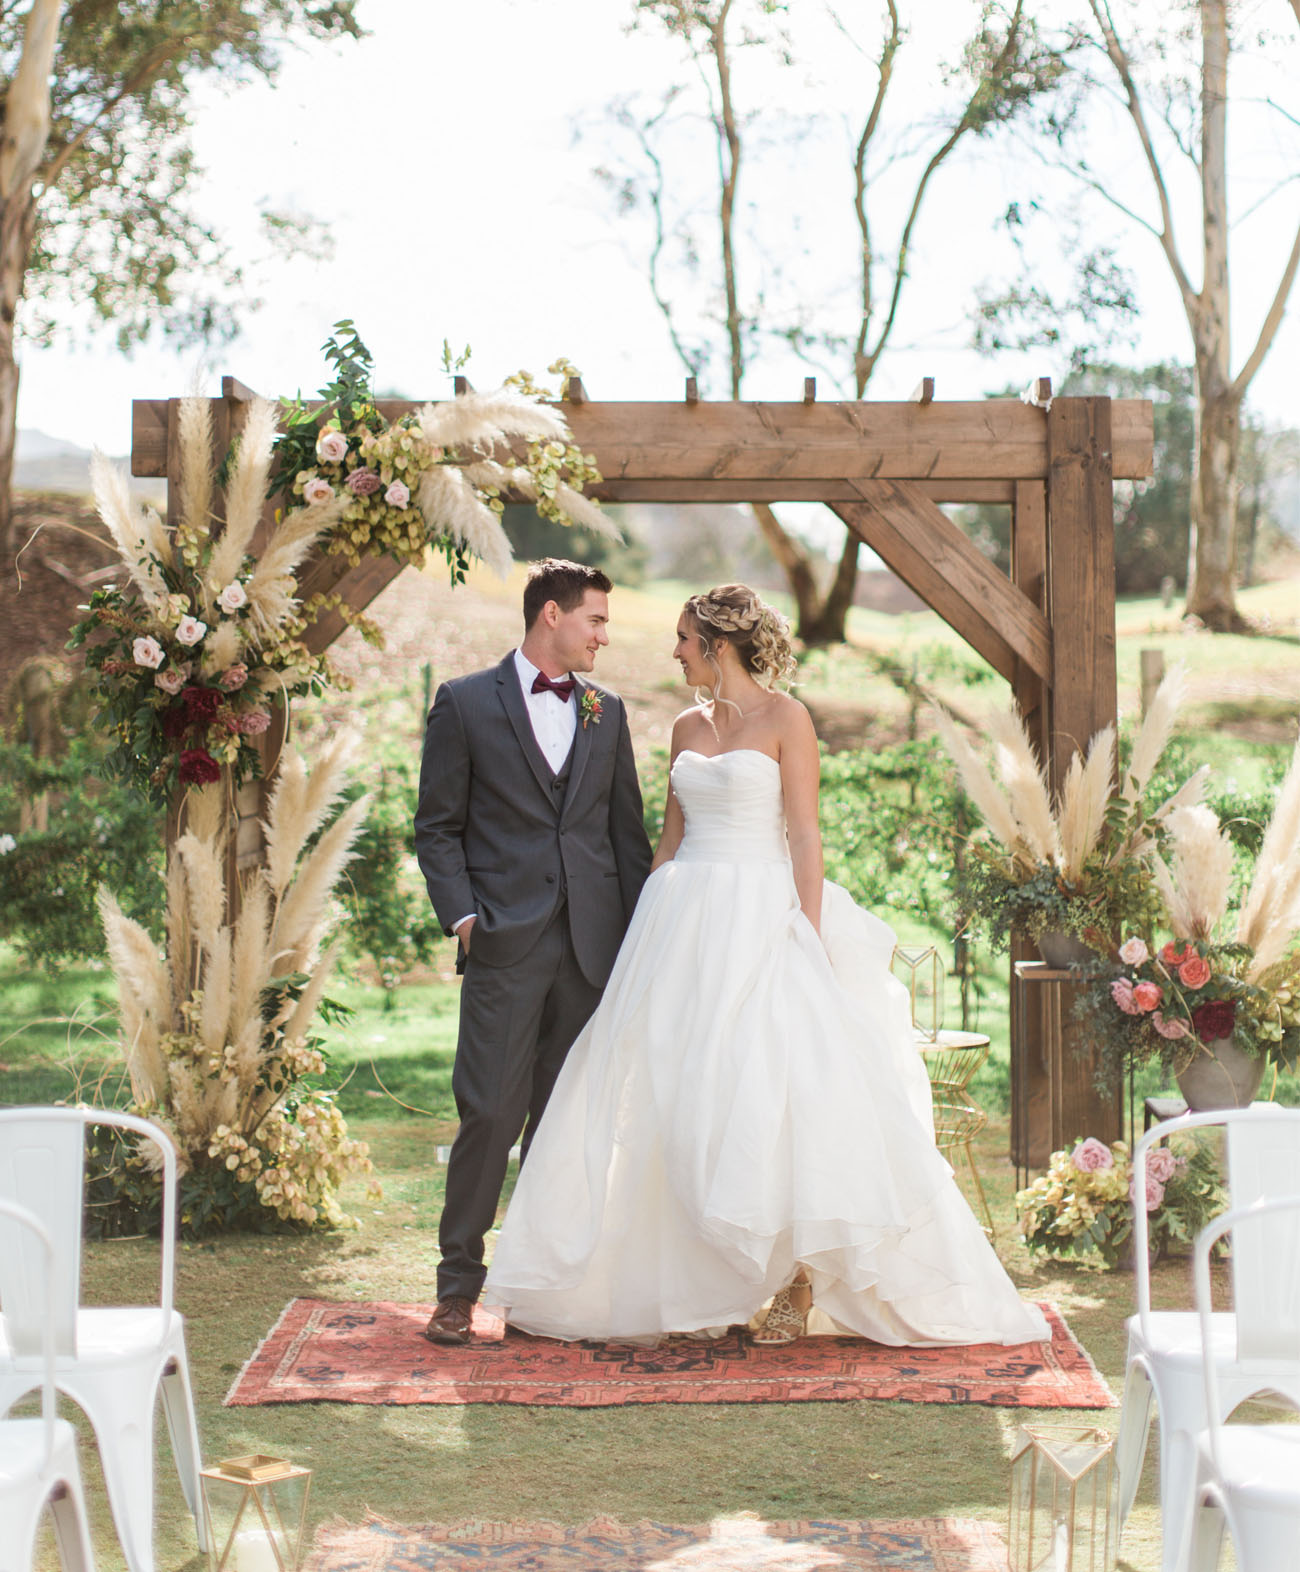 Wedding Ideas And Inspirations: Whimsy Wedding Inspiration In California Wine Country